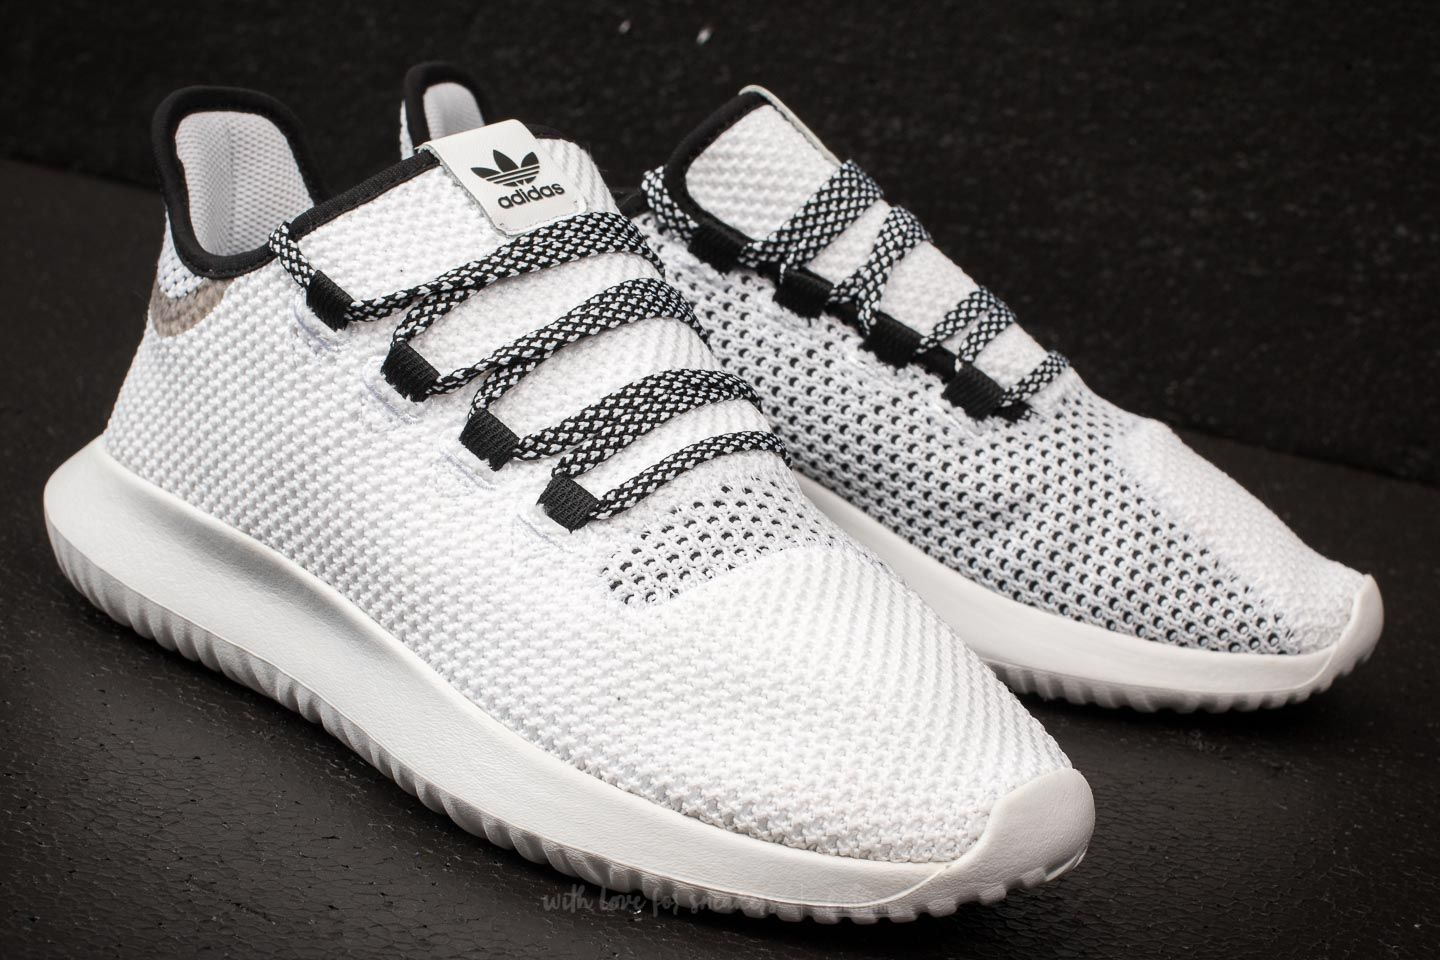 adidas originals Shoe Sneakers Tubular Shadow CK in white